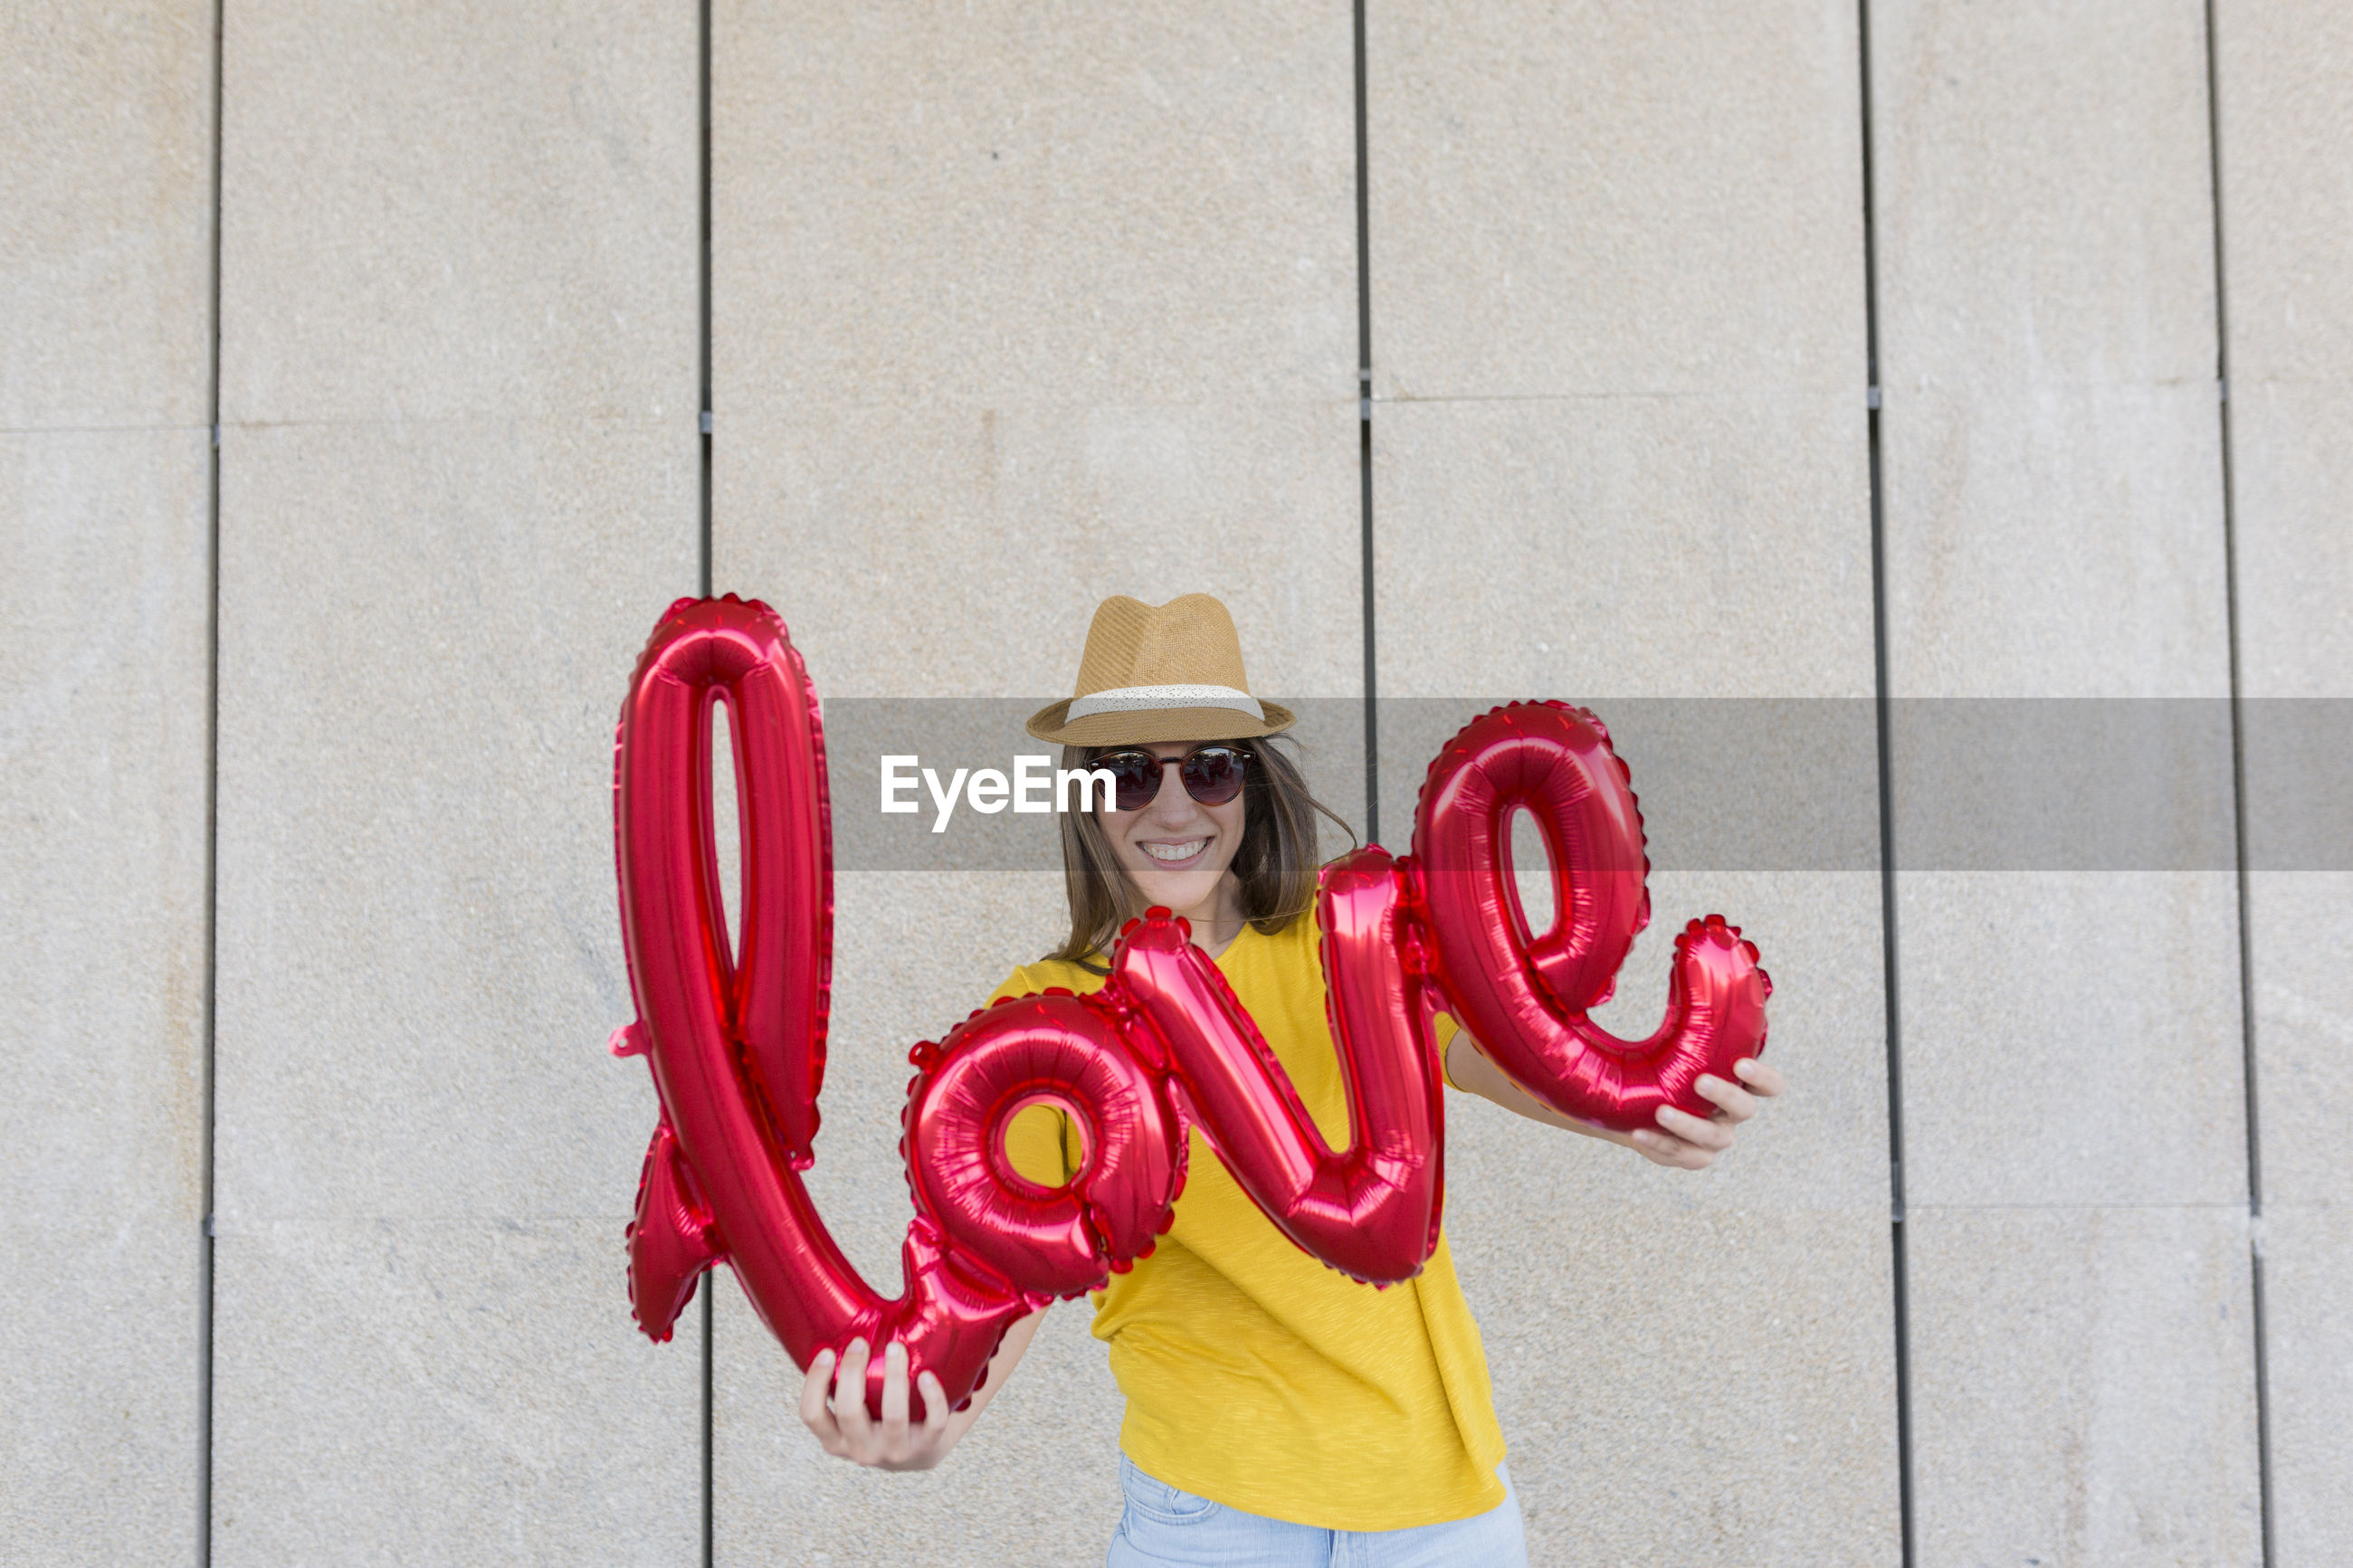 Portrait of woman holding balloons with text while standing against wall